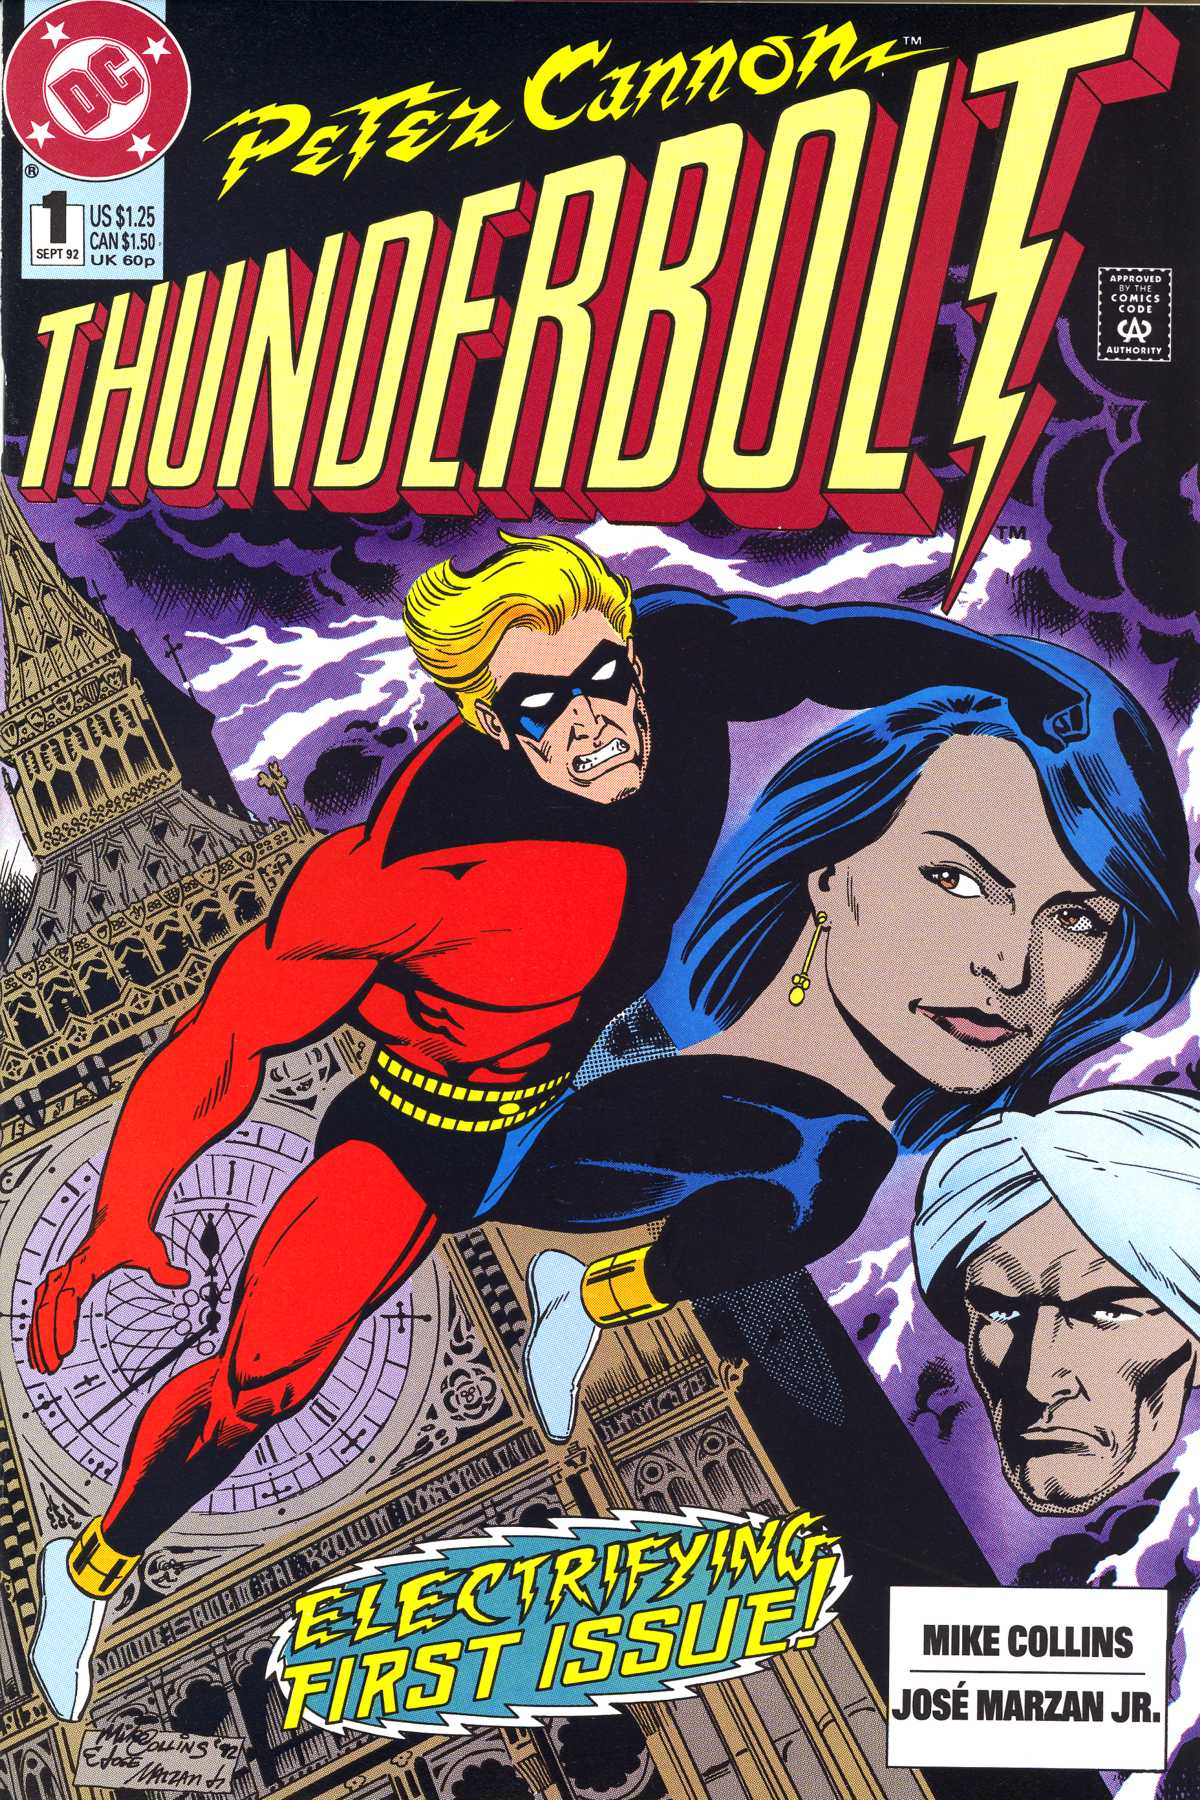 Read online Peter Cannon--Thunderbolt (1992) comic -  Issue #1 - 1